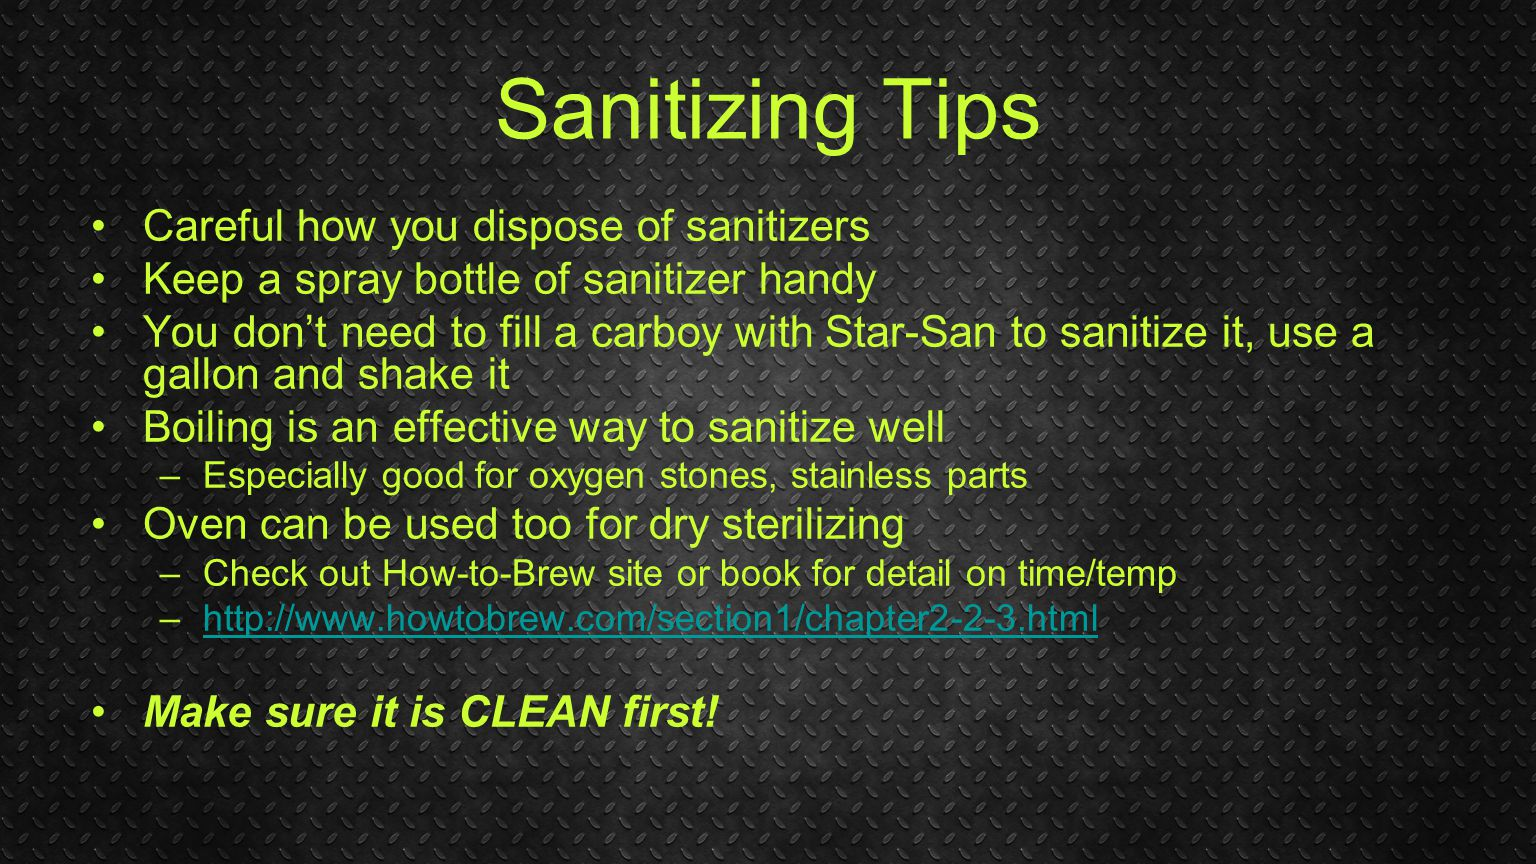 Sanitizing Tips Careful how you dispose of sanitizers Keep a spray bottle of sanitizer handy You don't need to fill a carboy with Star-San to sanitize it, use a gallon and shake it Boiling is an effective way to sanitize well –Especially good for oxygen stones, stainless parts Oven can be used too for dry sterilizing –Check out How-to-Brew site or book for detail on time/temp –http://www.howtobrew.com/section1/chapter2-2-3.htmlhttp://www.howtobrew.com/section1/chapter2-2-3.html Make sure it is CLEAN first!